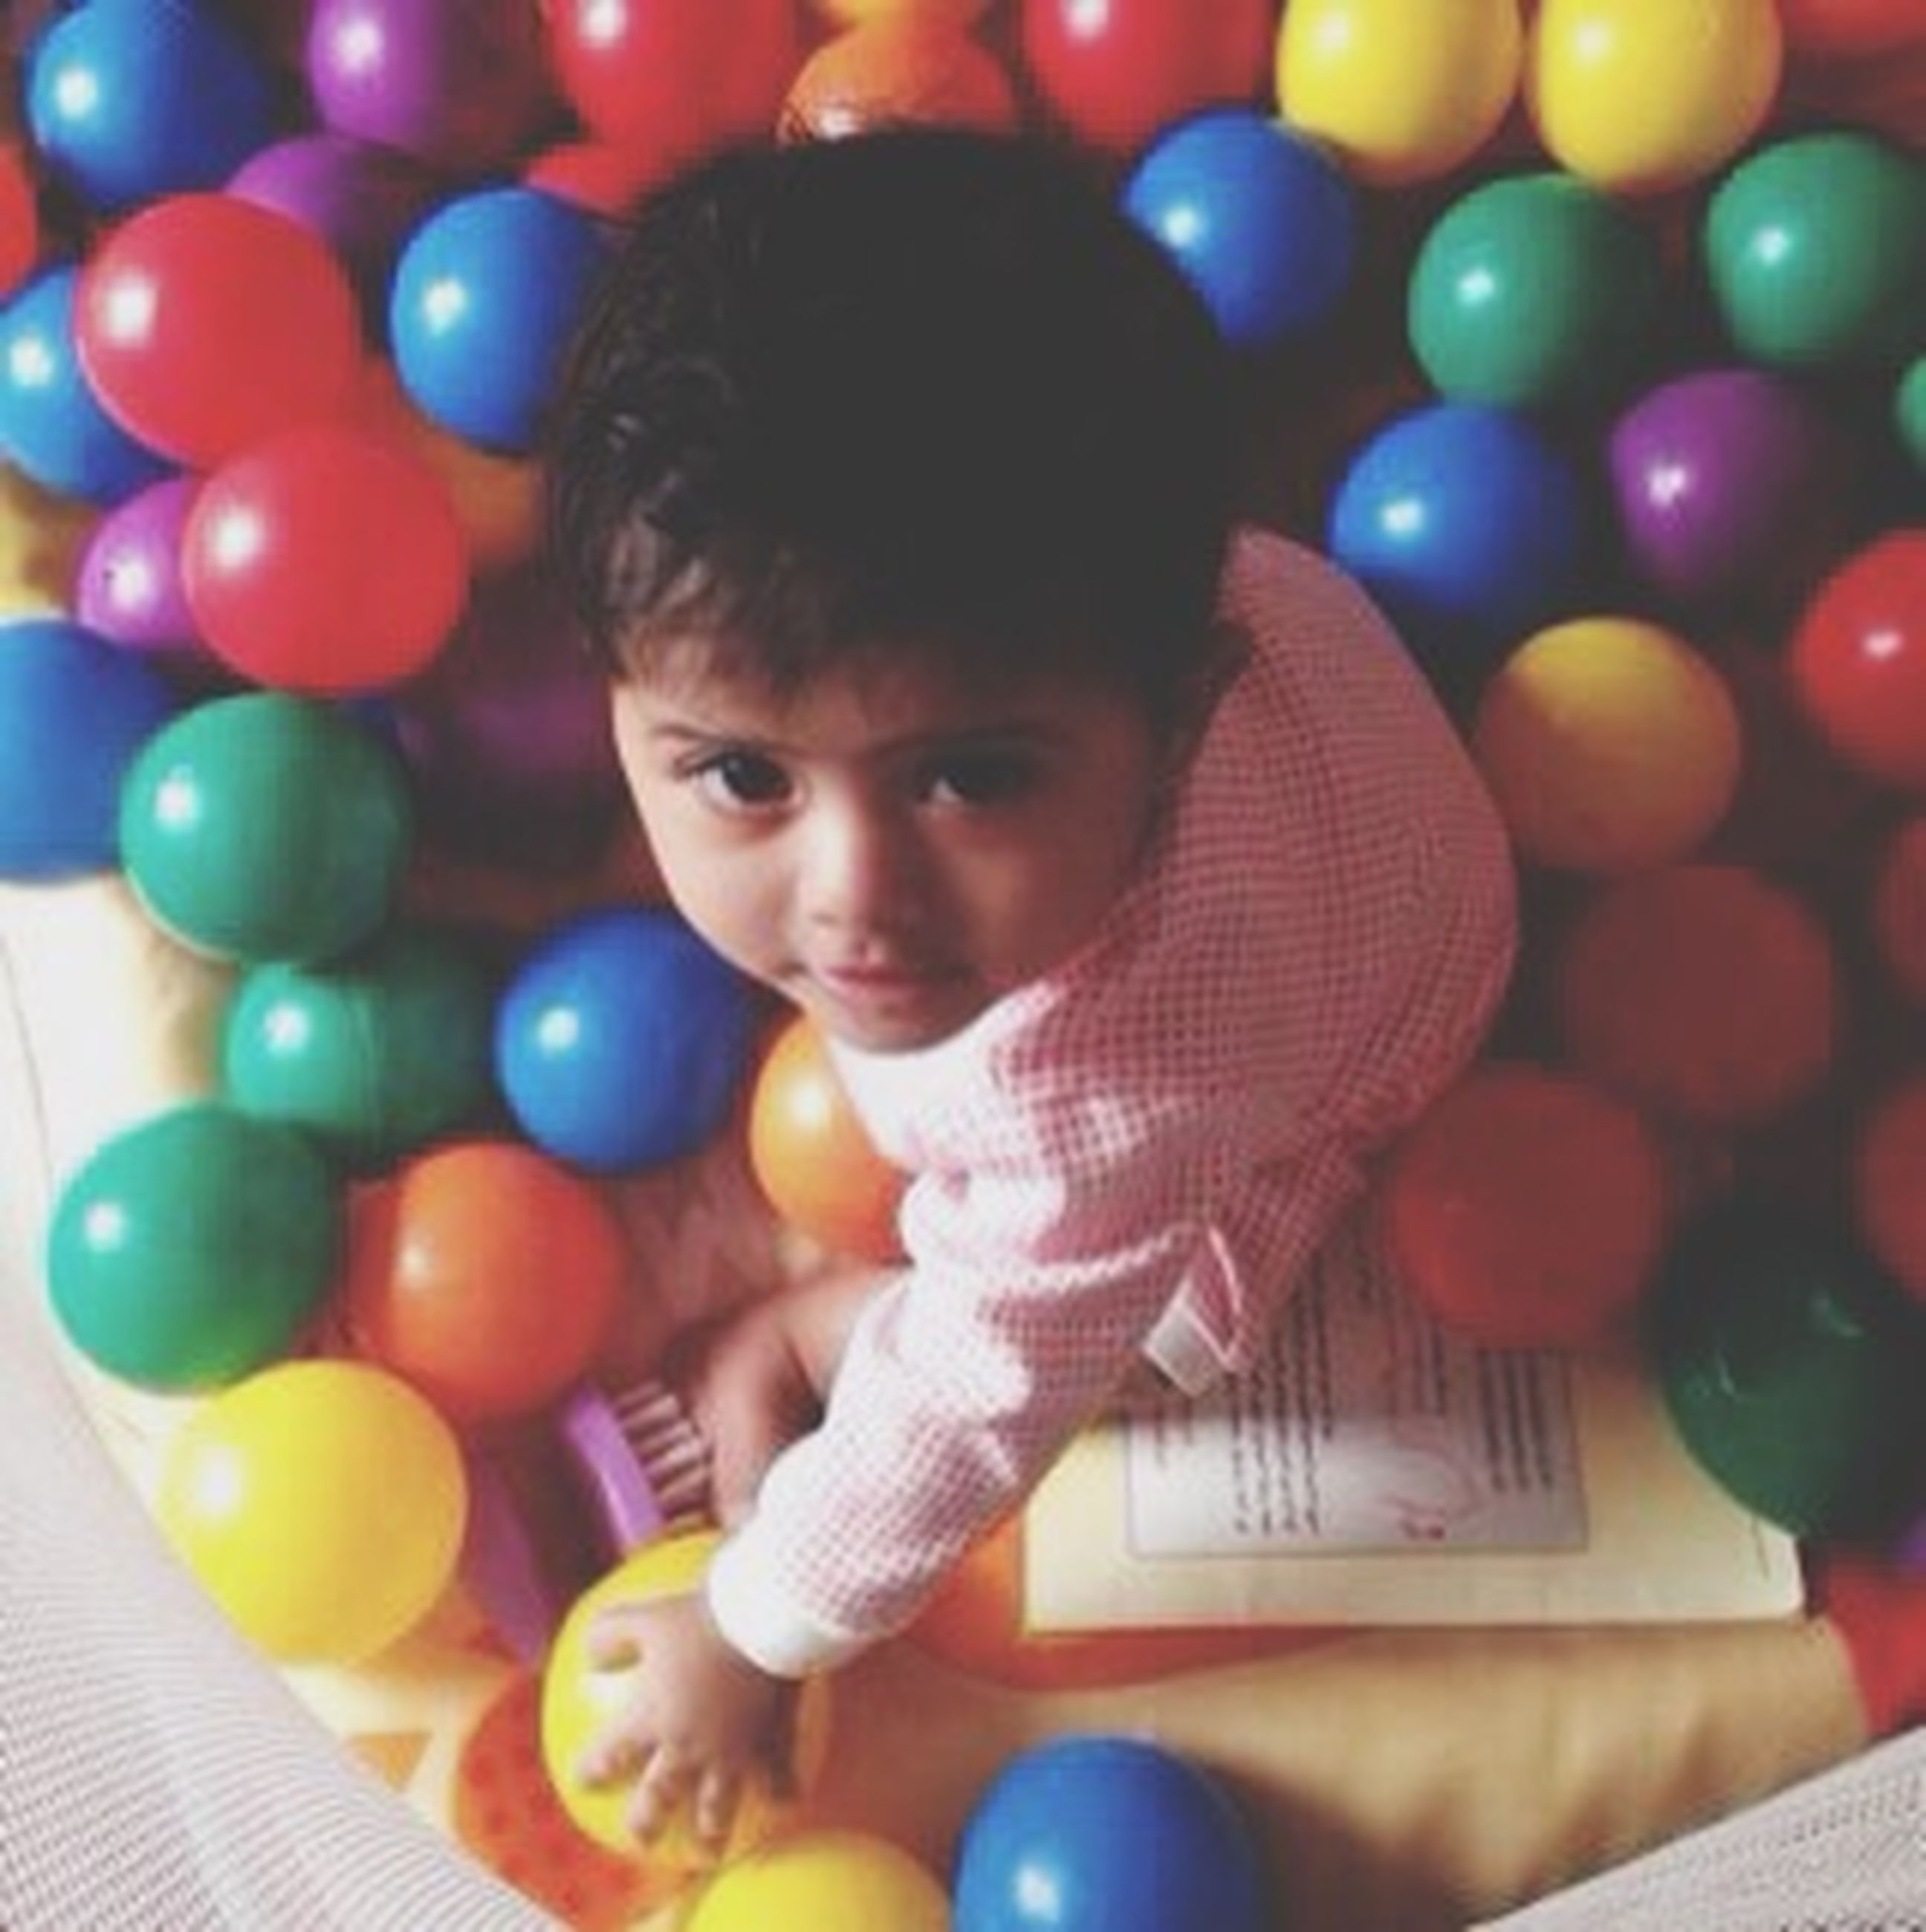 childhood, elementary age, innocence, indoors, cute, boys, toy, leisure activity, girls, playful, lifestyles, multi colored, playing, person, ball, fun, portrait, high angle view